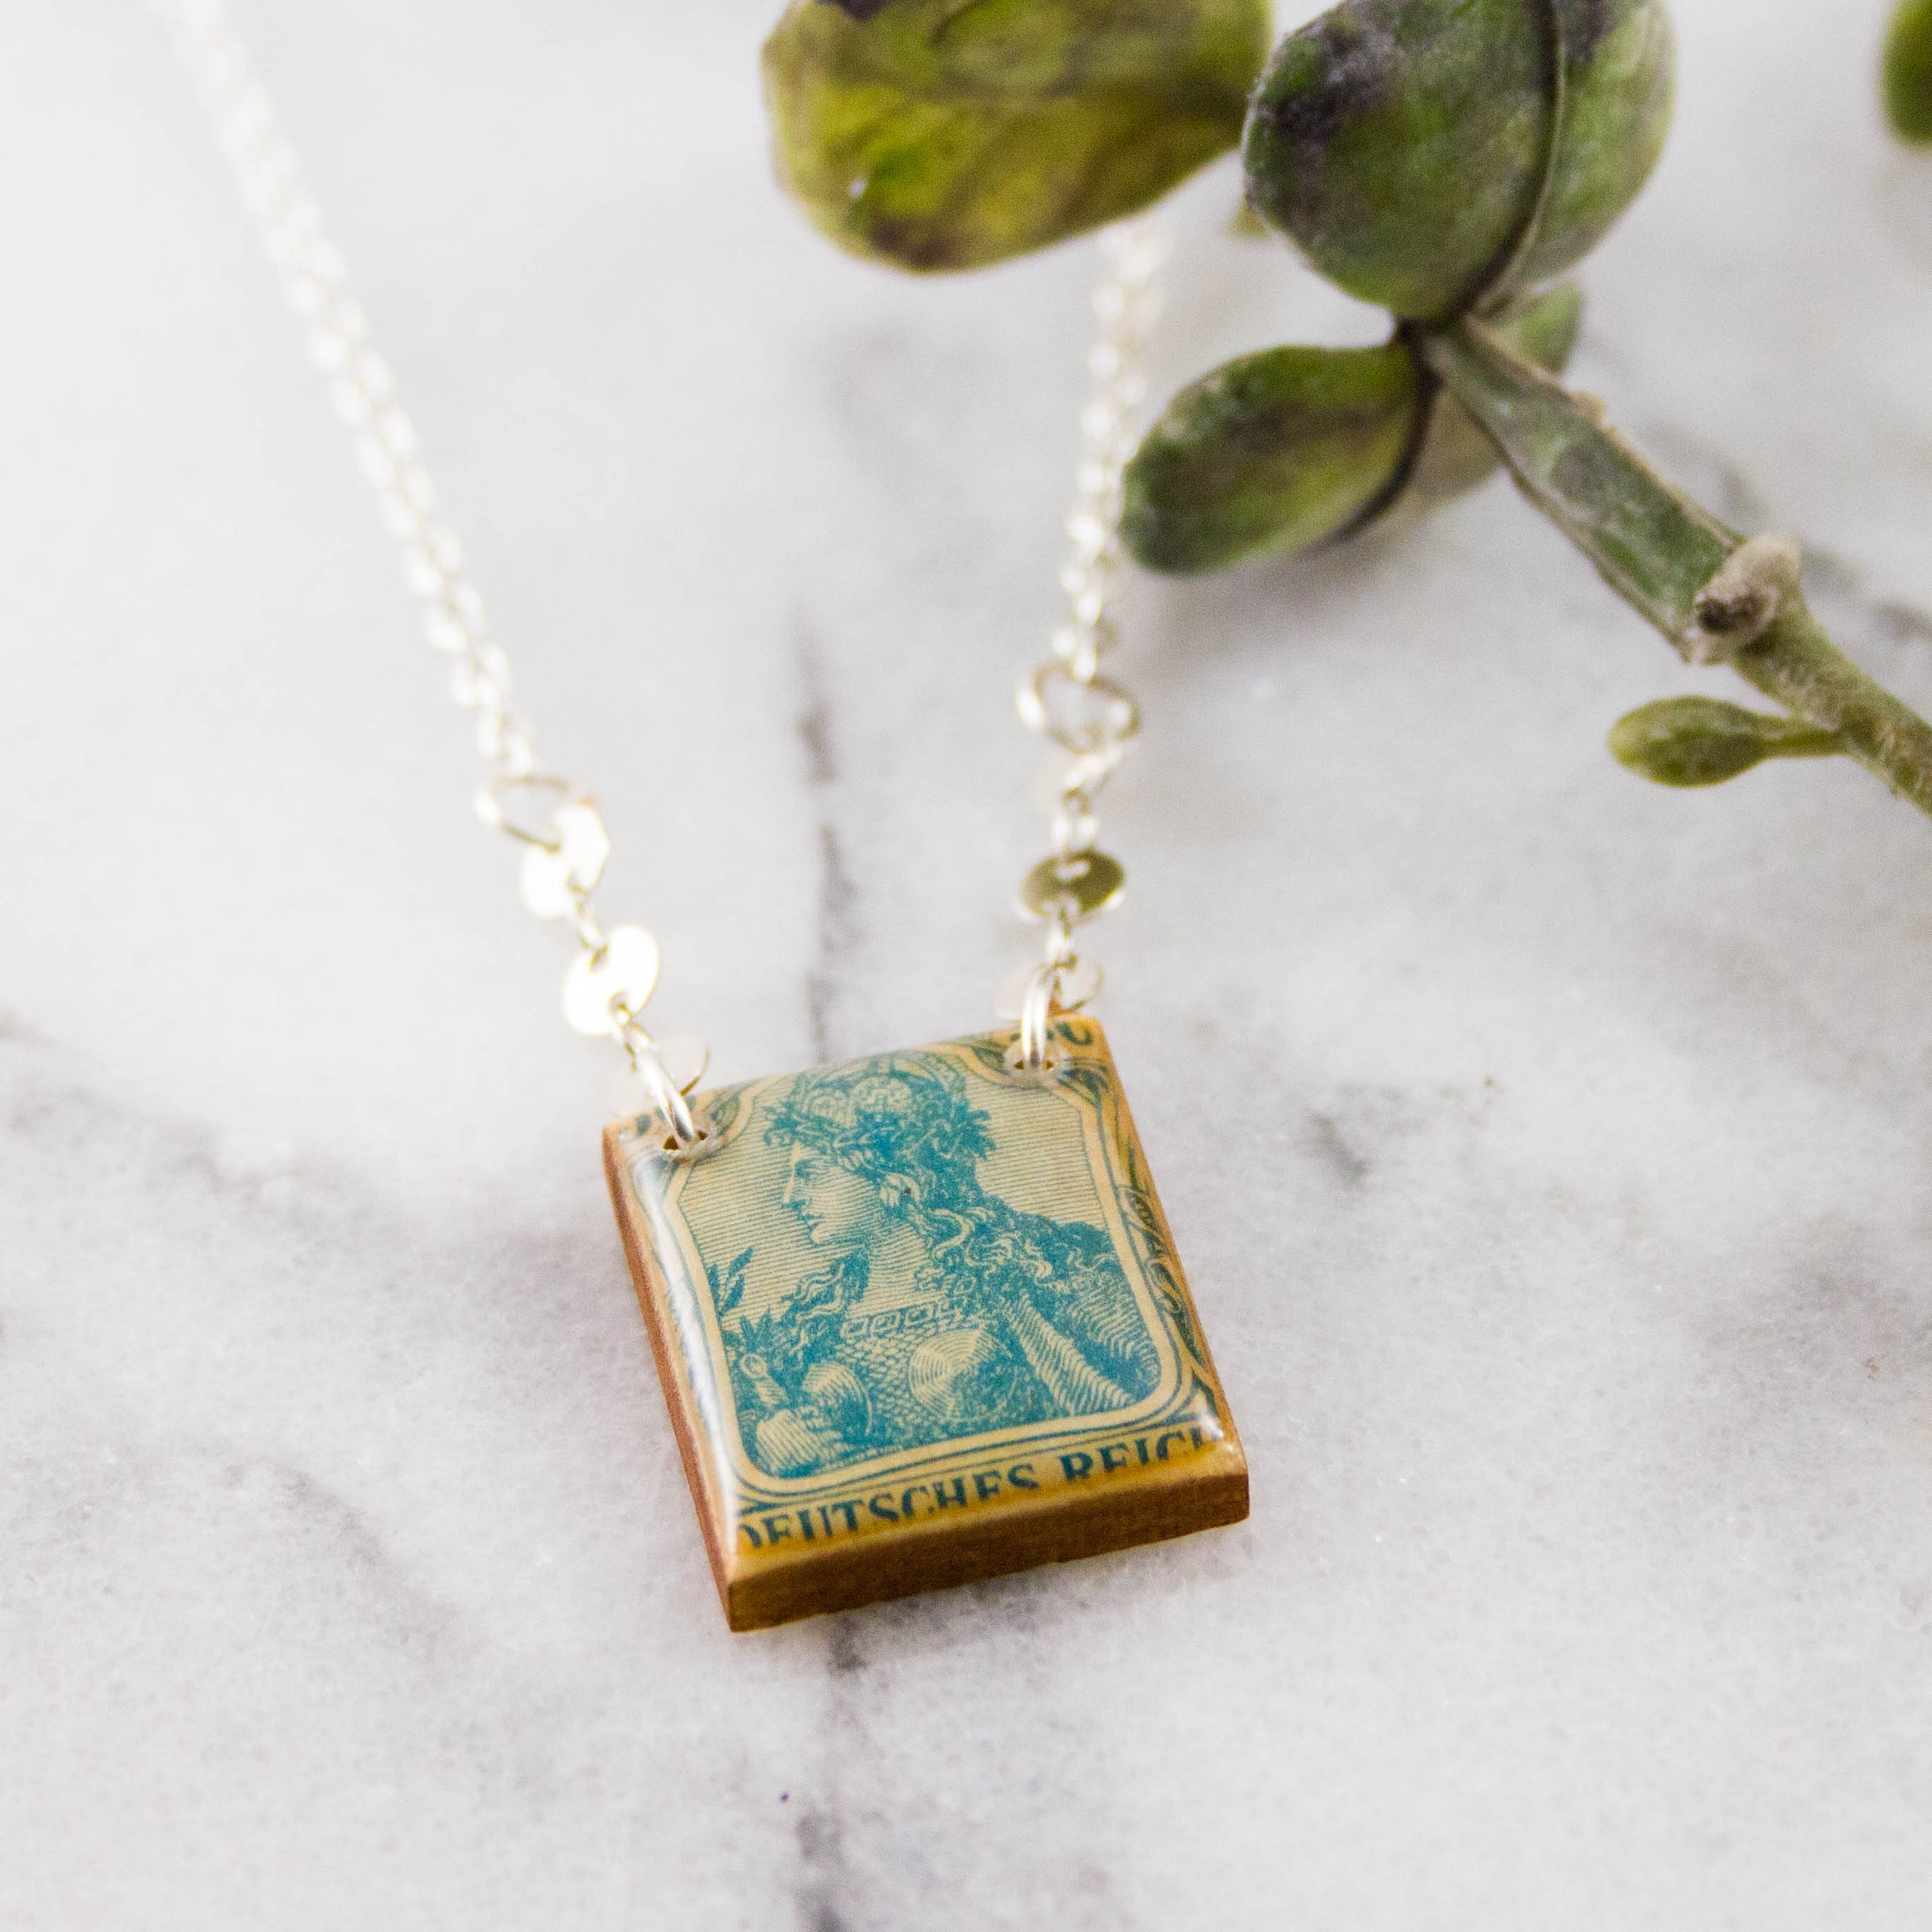 GERMANY- Antique Postage Stamp Necklace in Turquoise